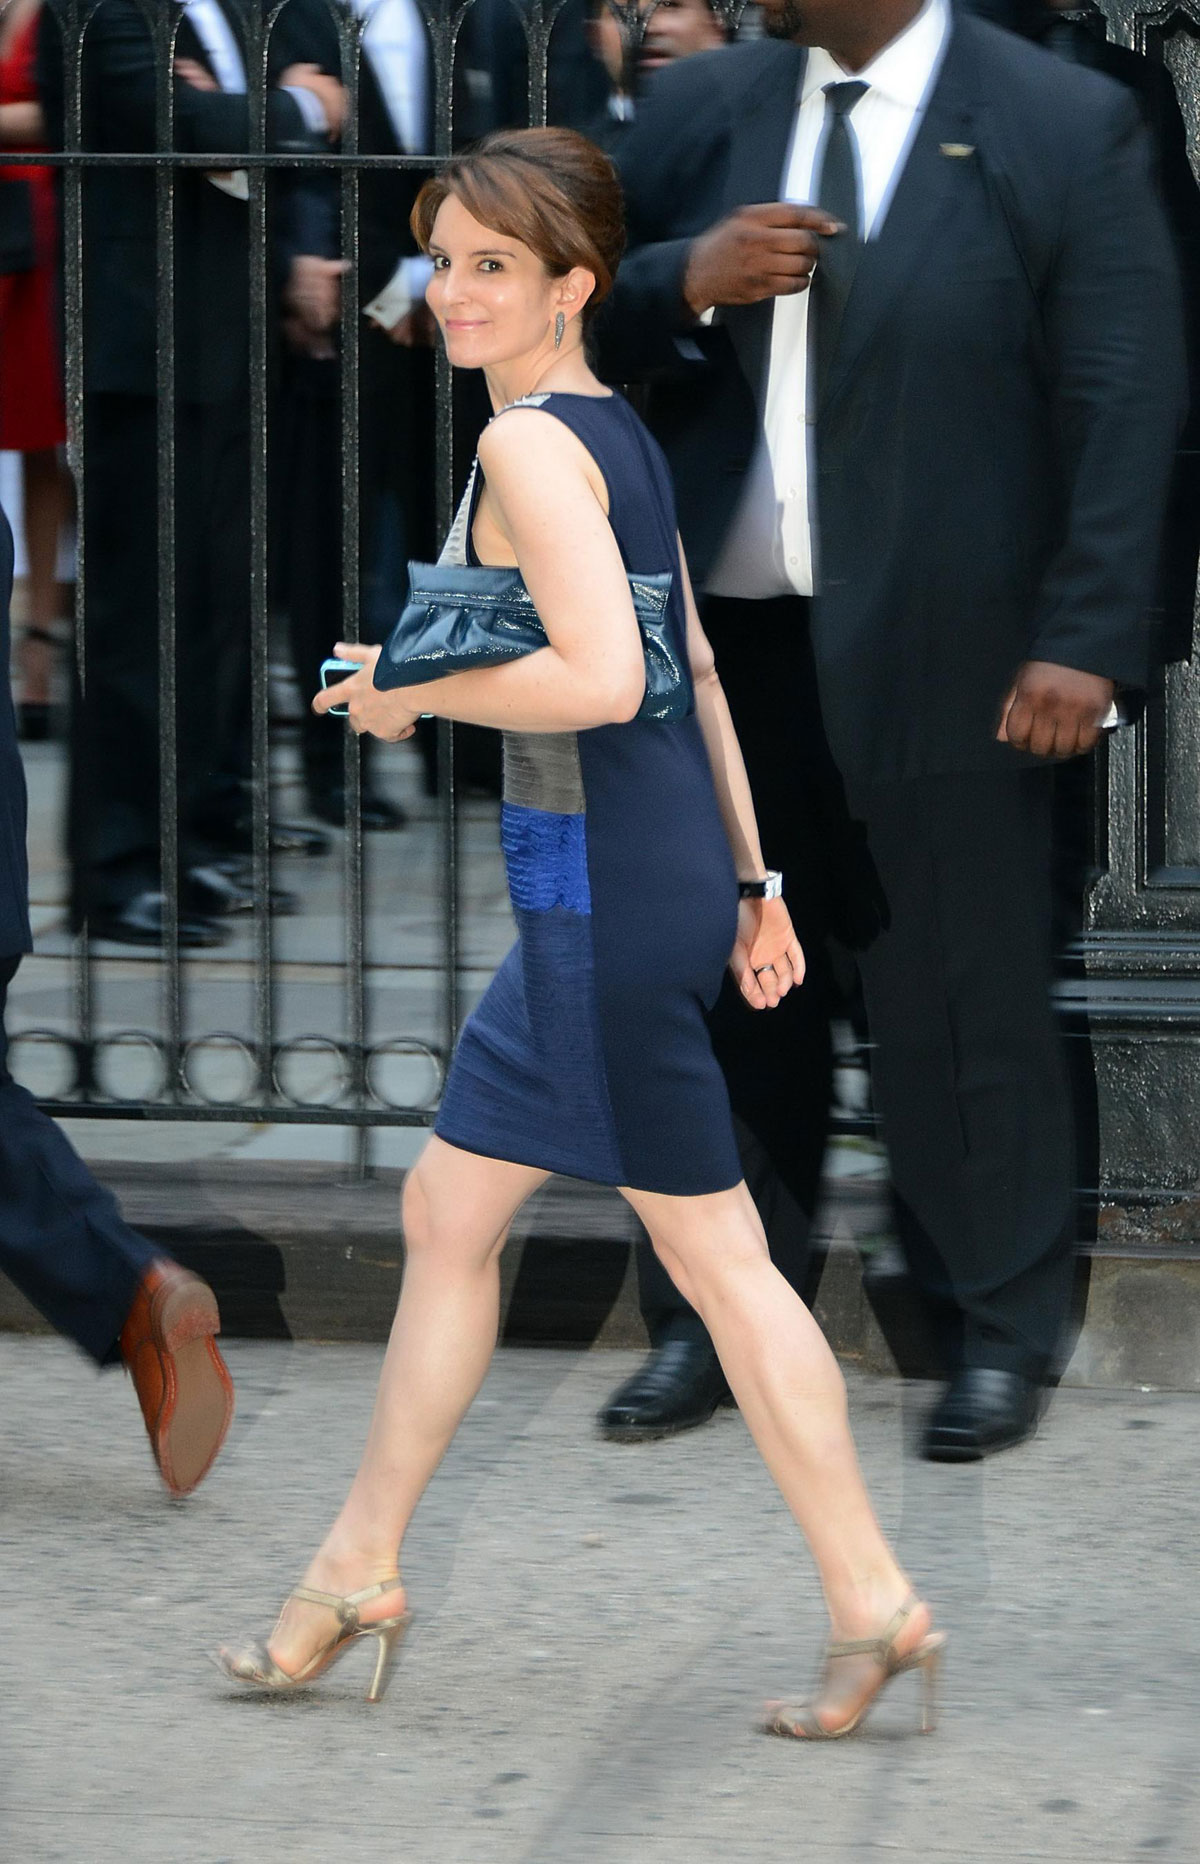 tina fey at alec baldwin and hilaria thomas wedding in ny